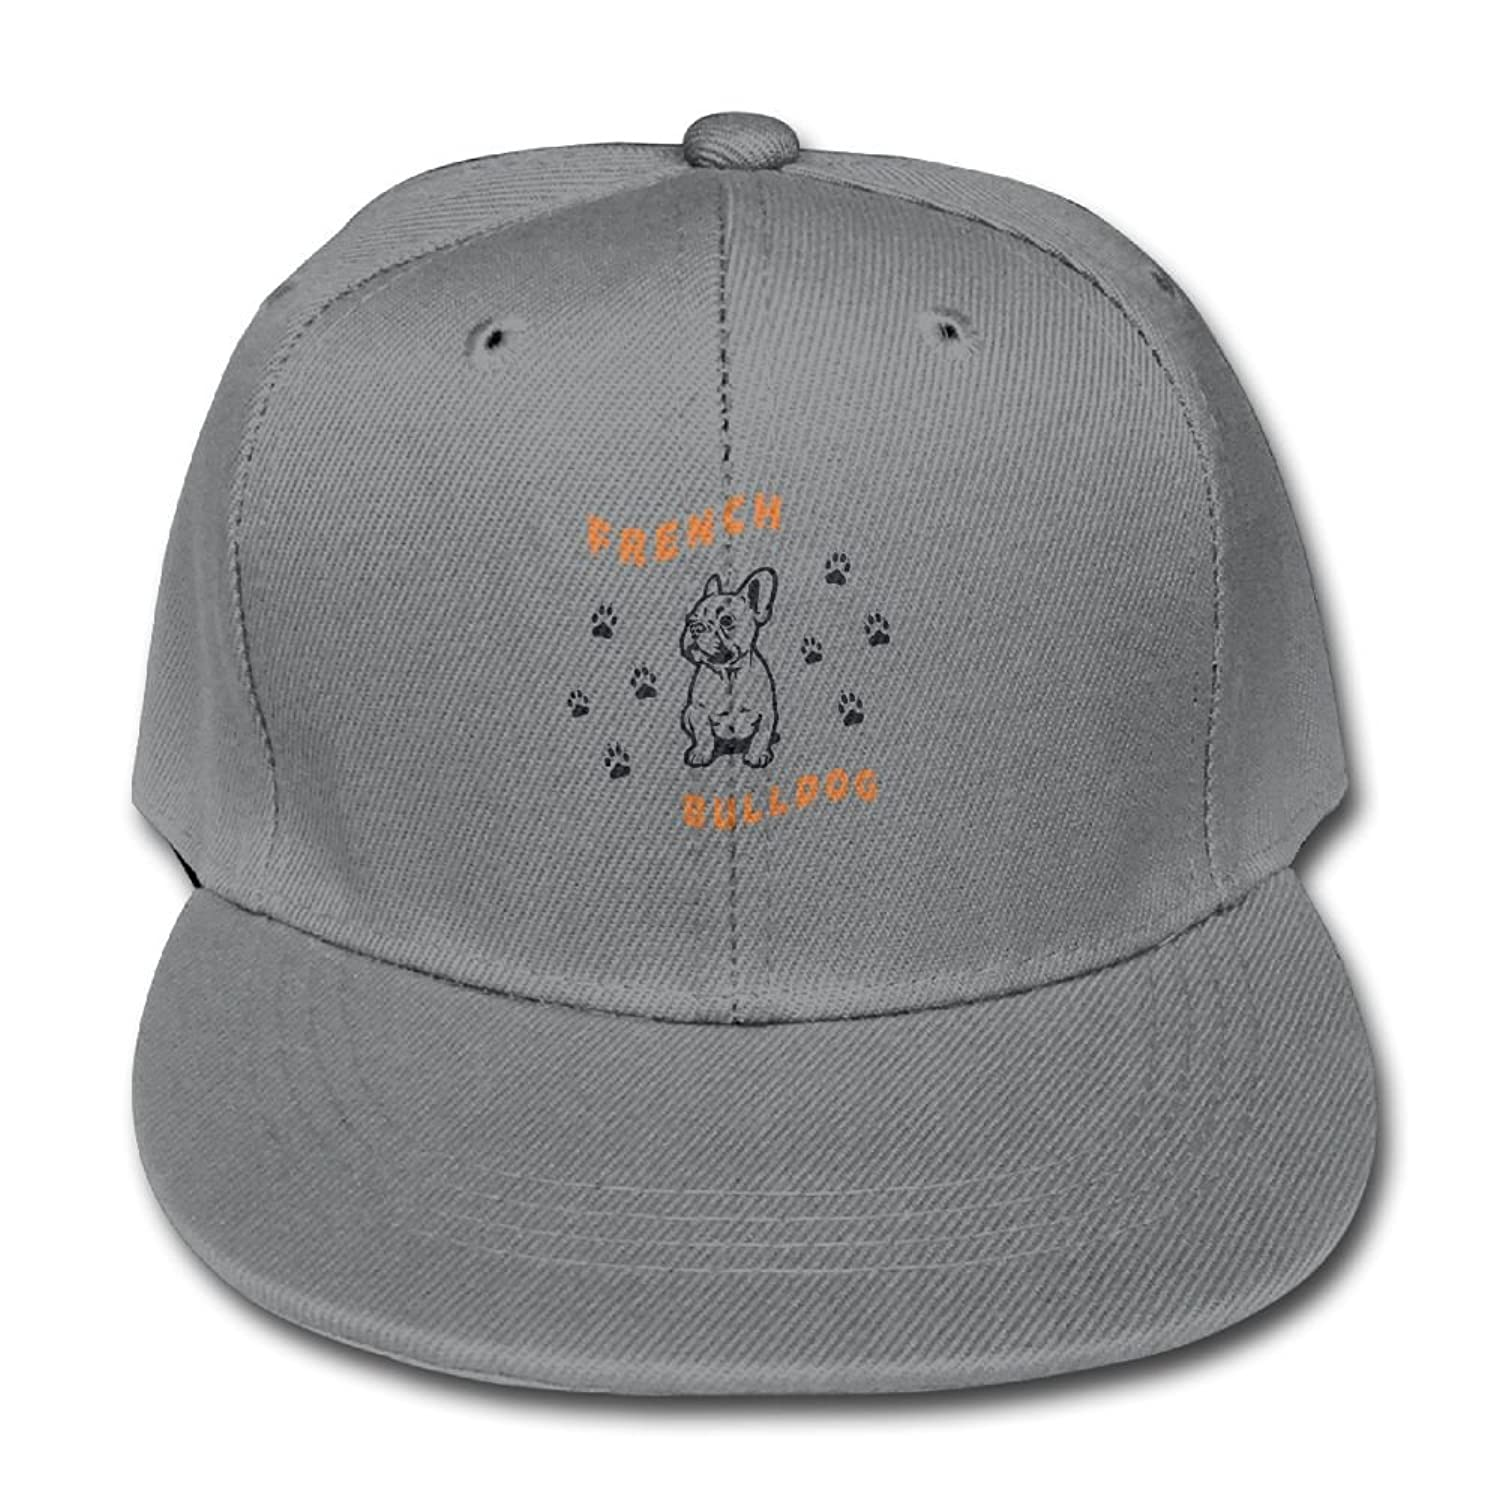 572ce317f60 Nklnaln French Bulldog Adjustable Truck Cap For Boys and Girls ...